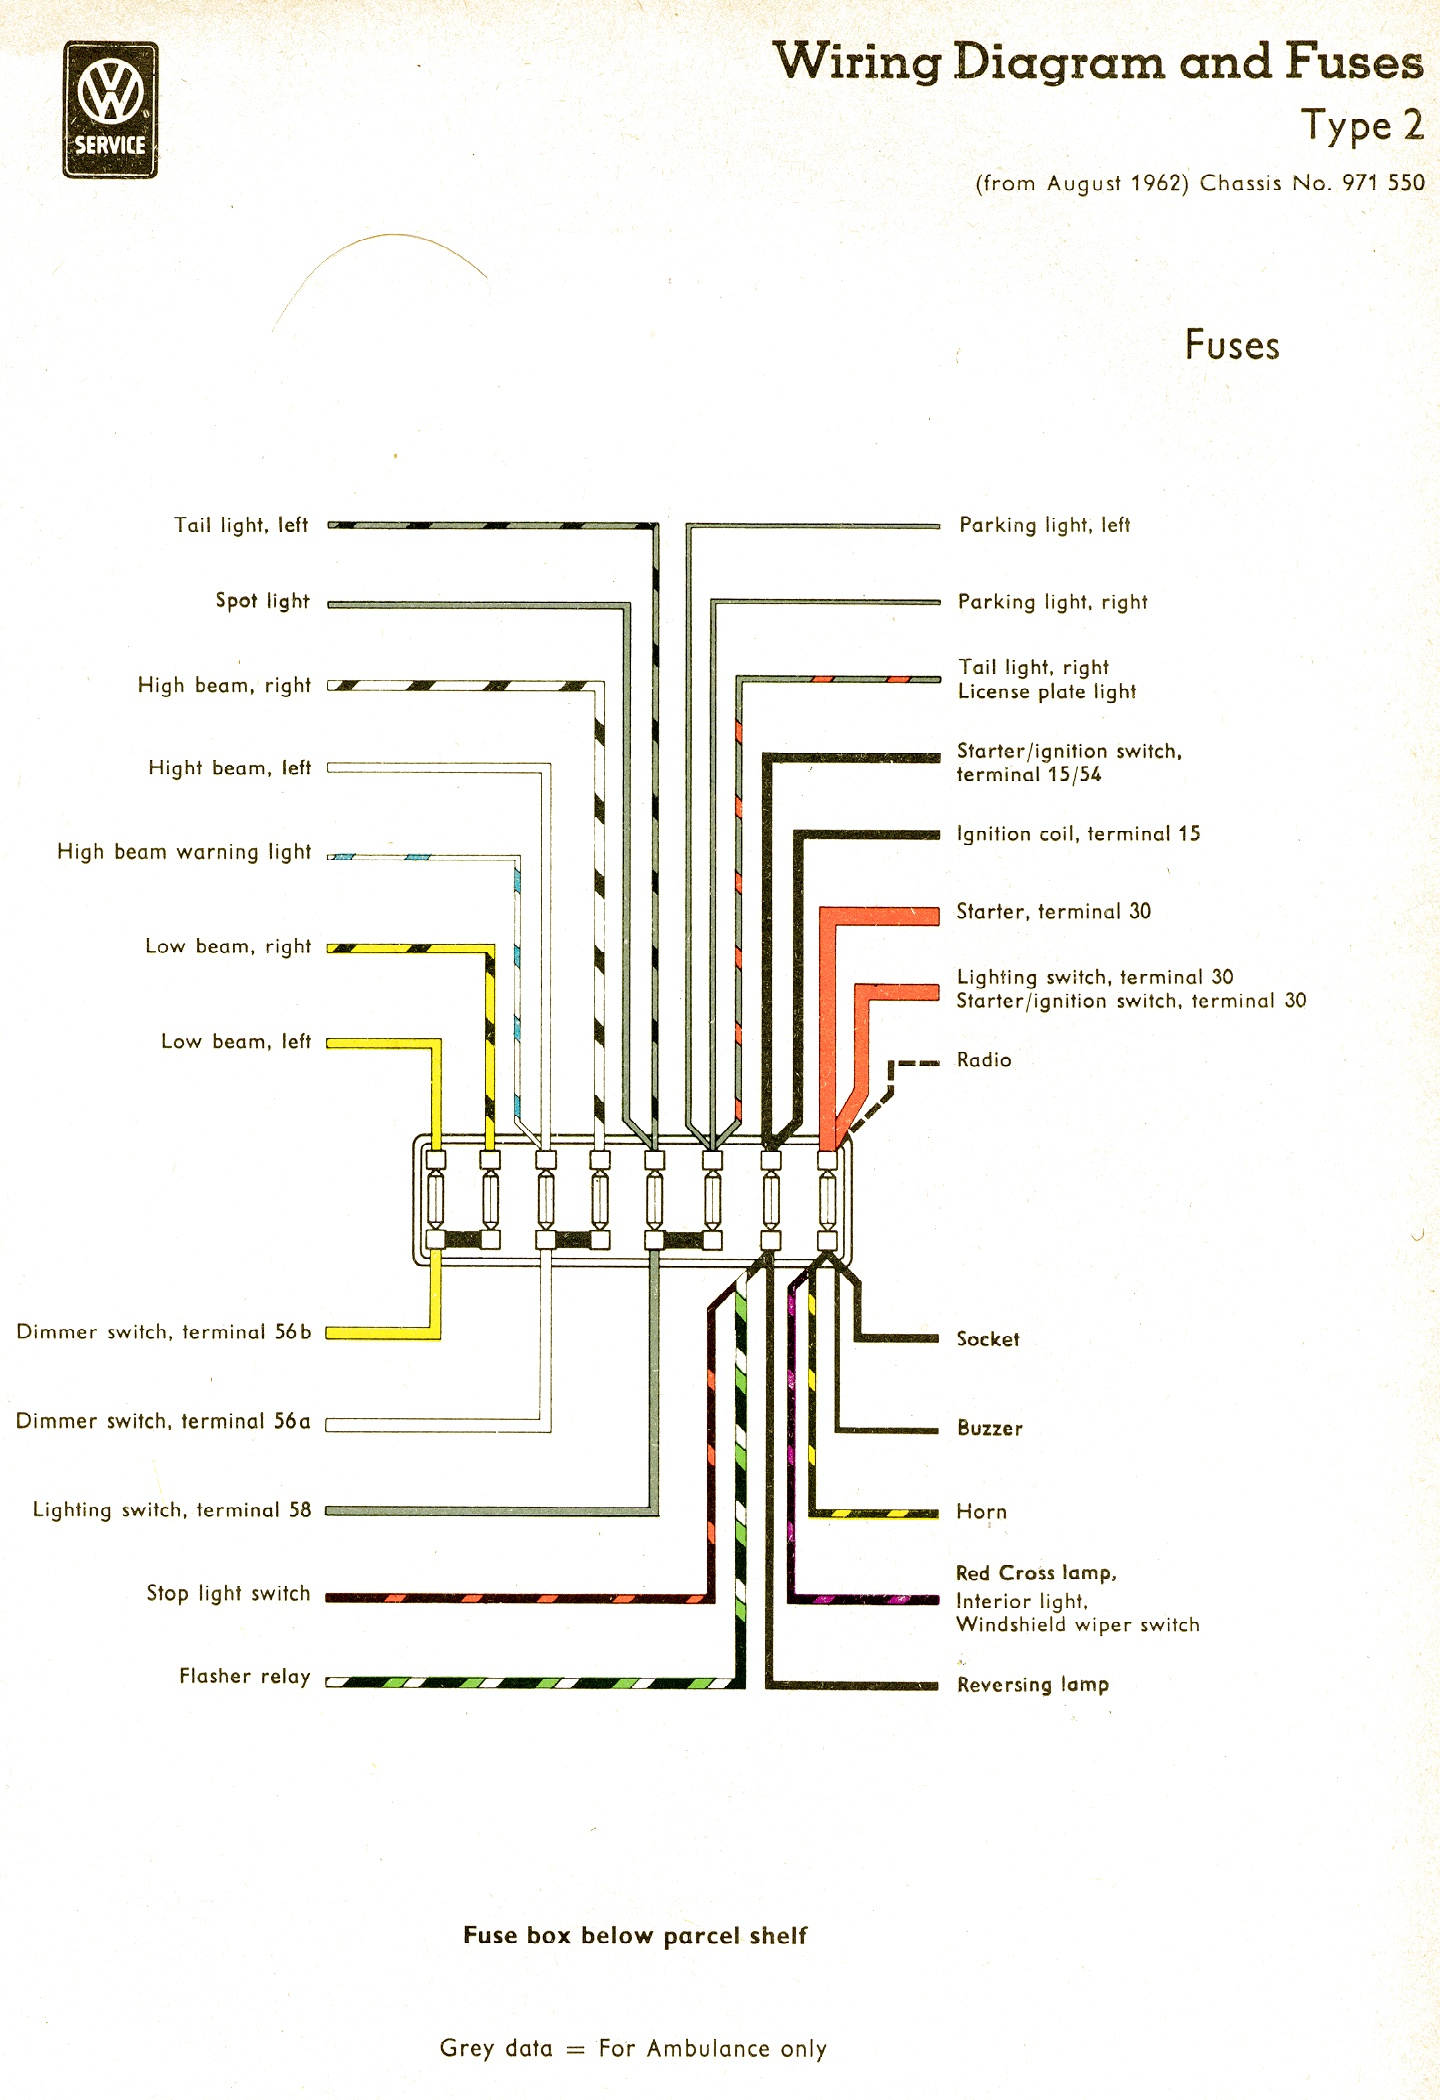 1970 Beetle Fuse Box - Wiring Diagram Progresif on 1971 vw super beetle starter diagram, 70 vw beetle, 70 vw chassis, 70 vw engine, bay window diagram, 1968 vw beetle speedometer diagram, 1970 vw electrical diagram, 74 super beetle front end diagram, vw type 3 engine diagram, vw beetle fuse box diagram, 2nd gen eclipse alternator diagram,